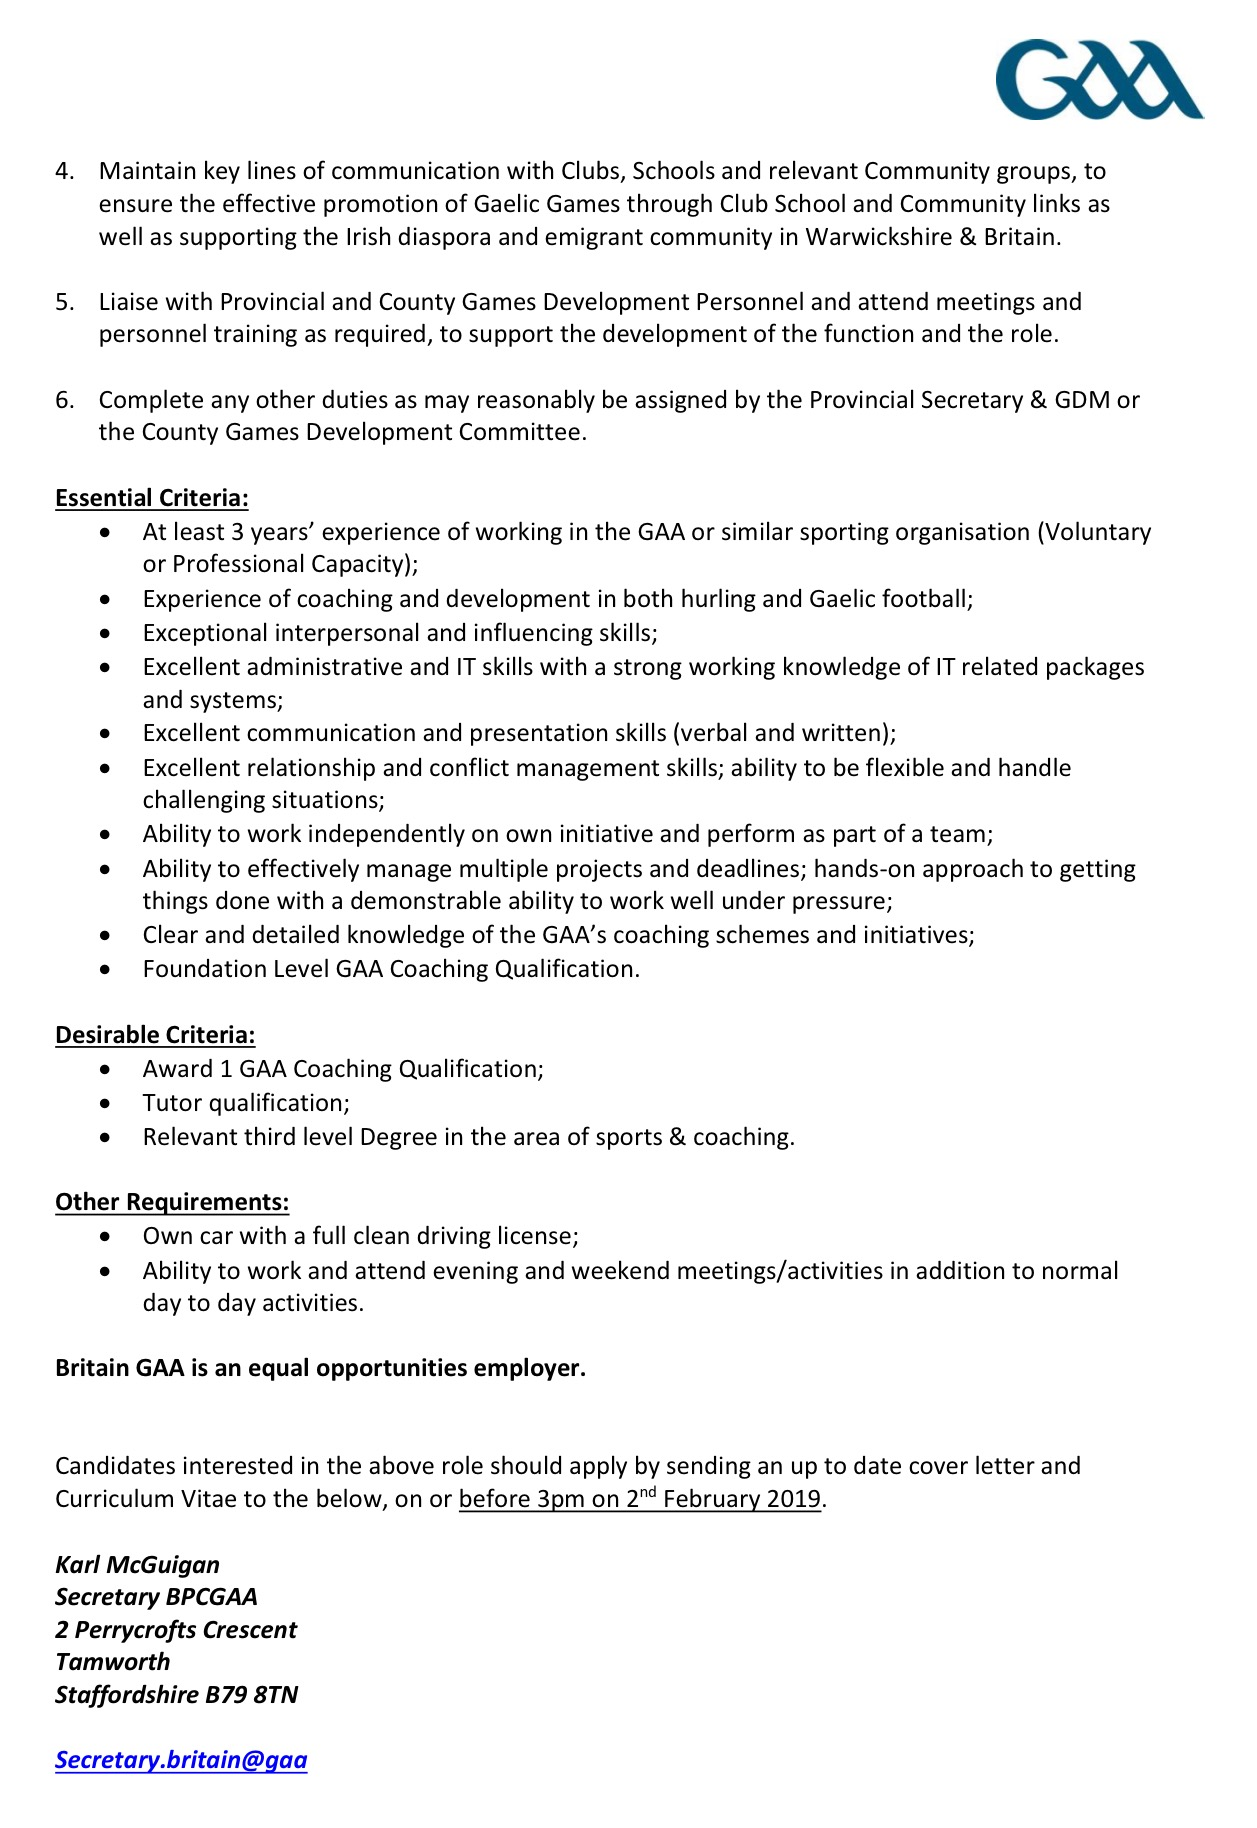 Warwickshire GAA are looking for a Community Development Administrator